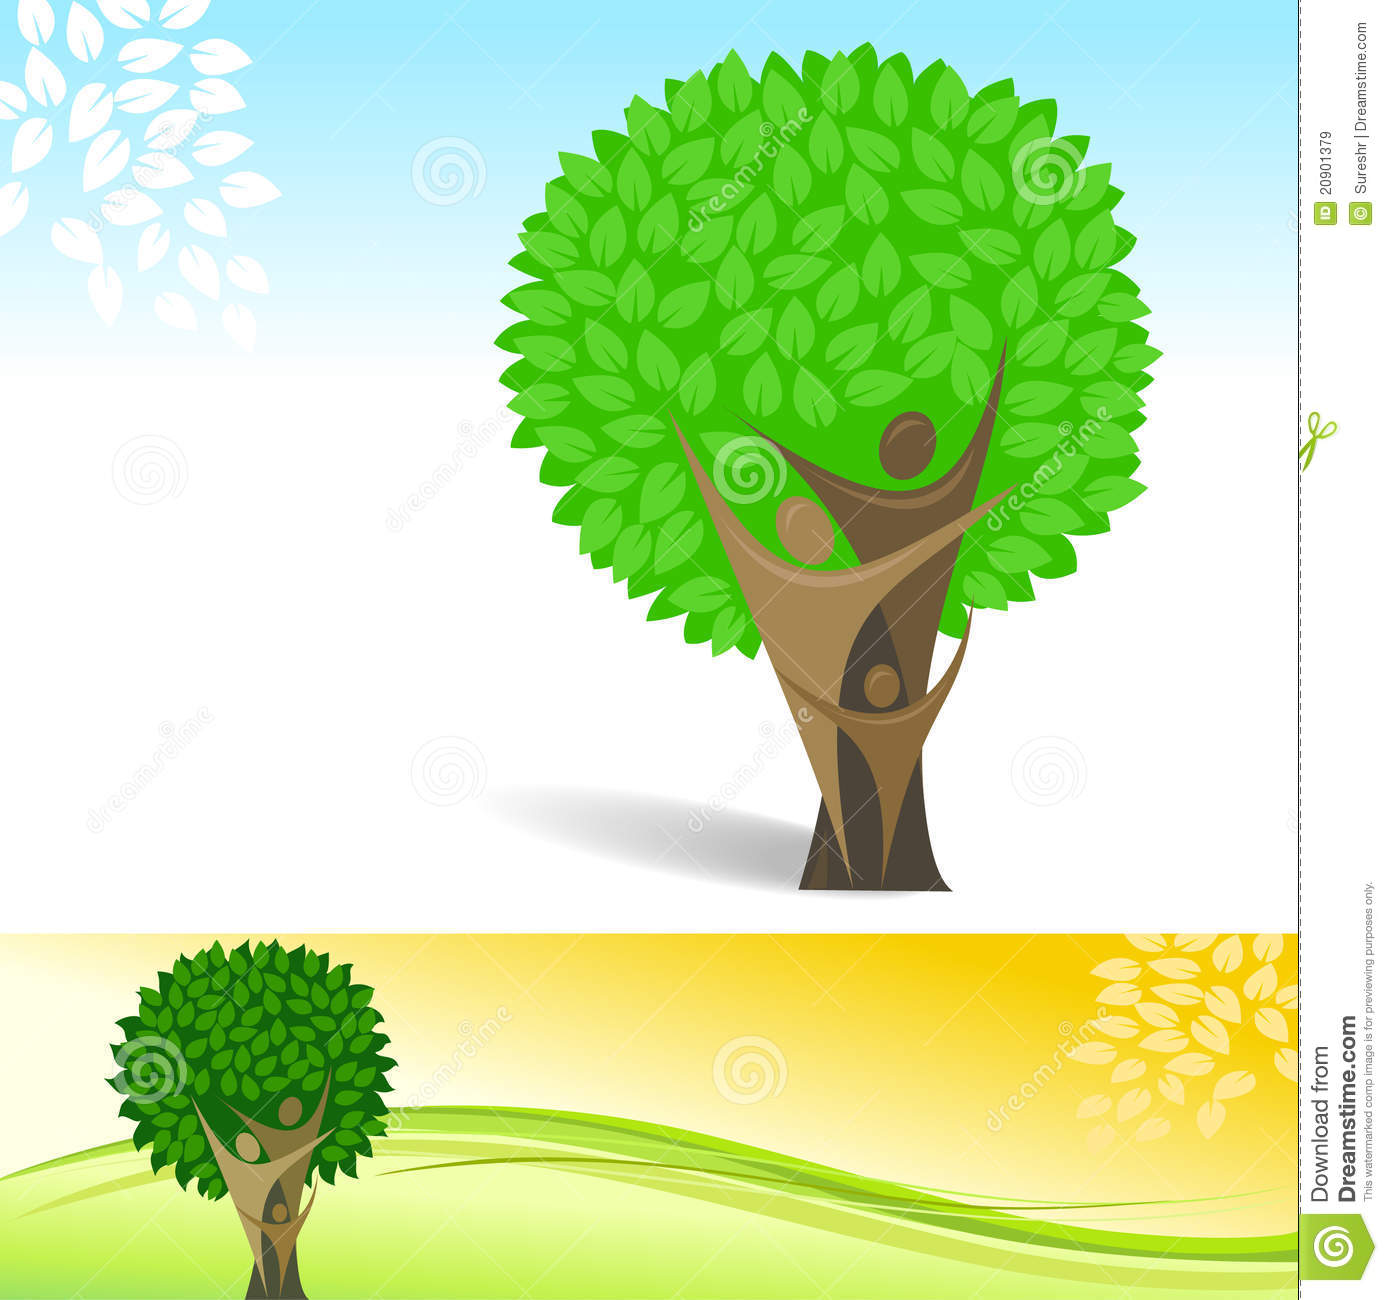 Abstract Family Tree Vector Background Royalty Free Stock Images Image 20901379